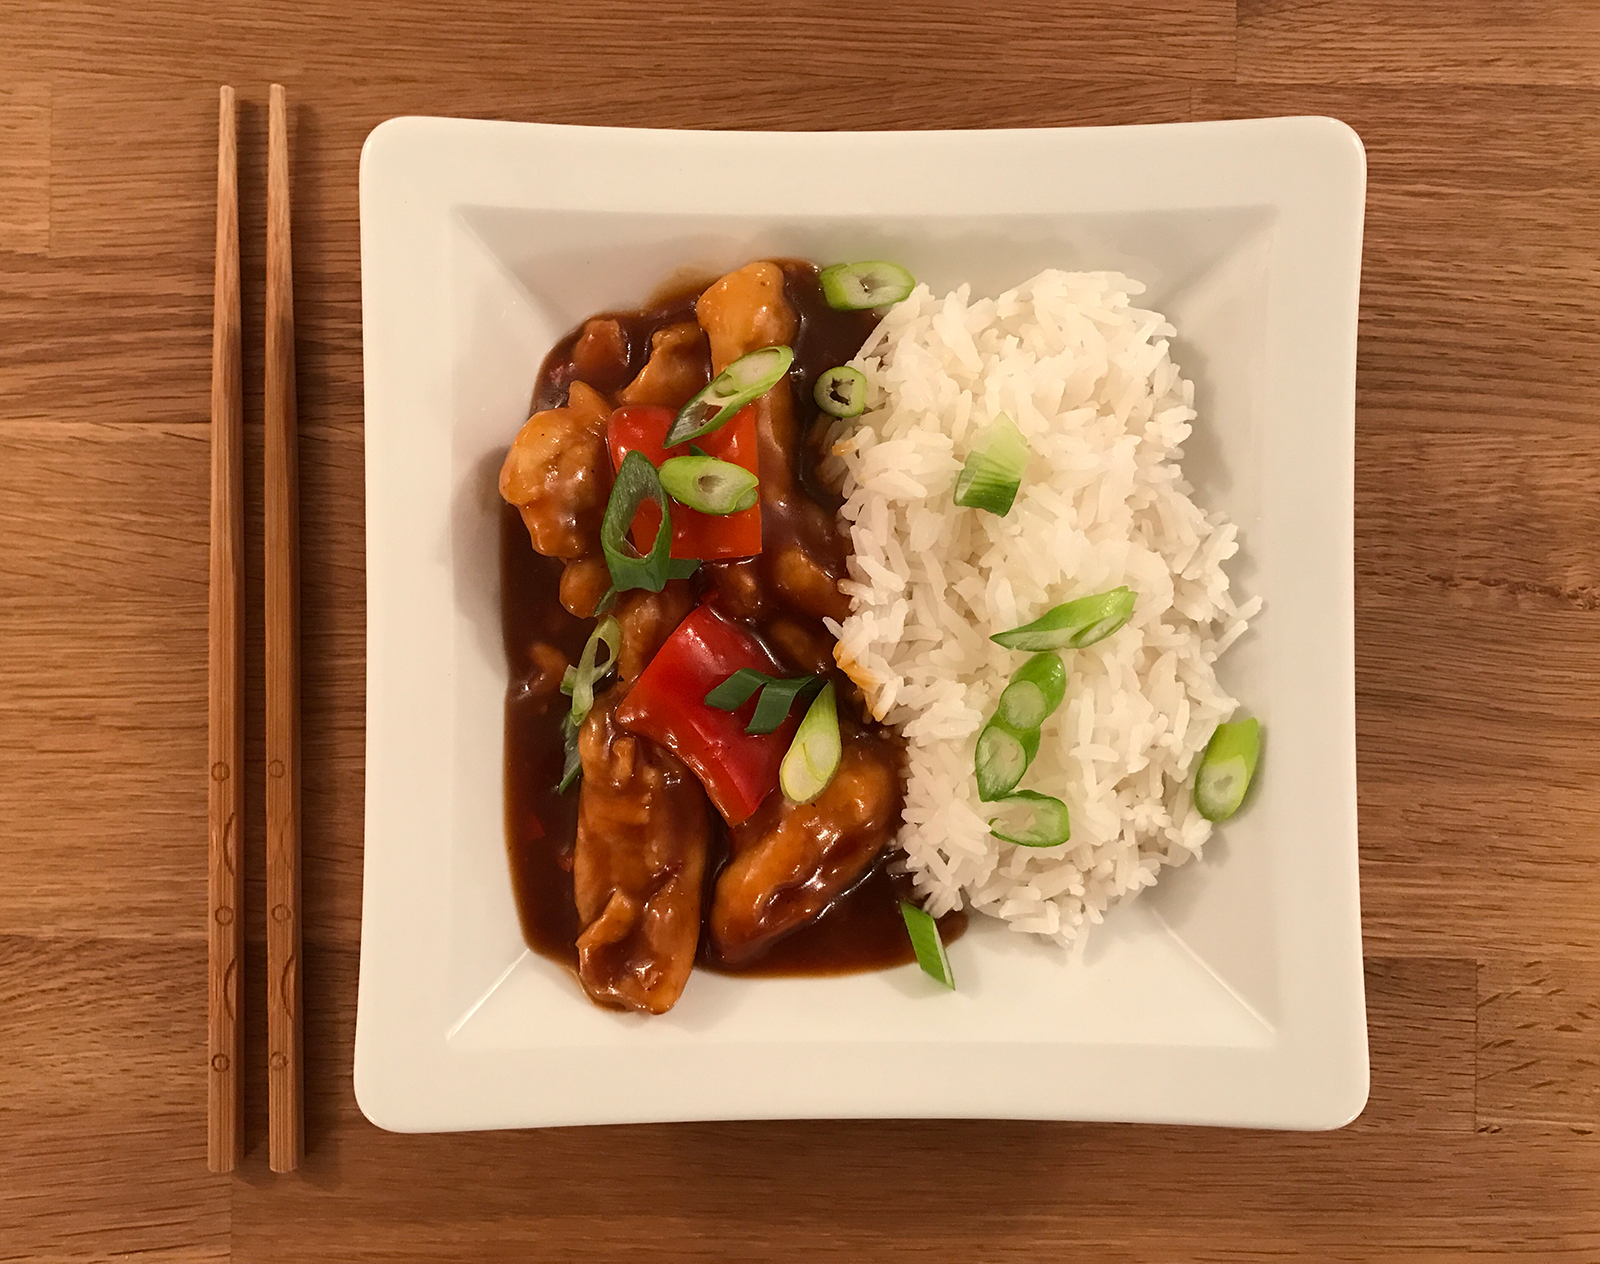 Spiced Honey and Soy Chicken with Rice